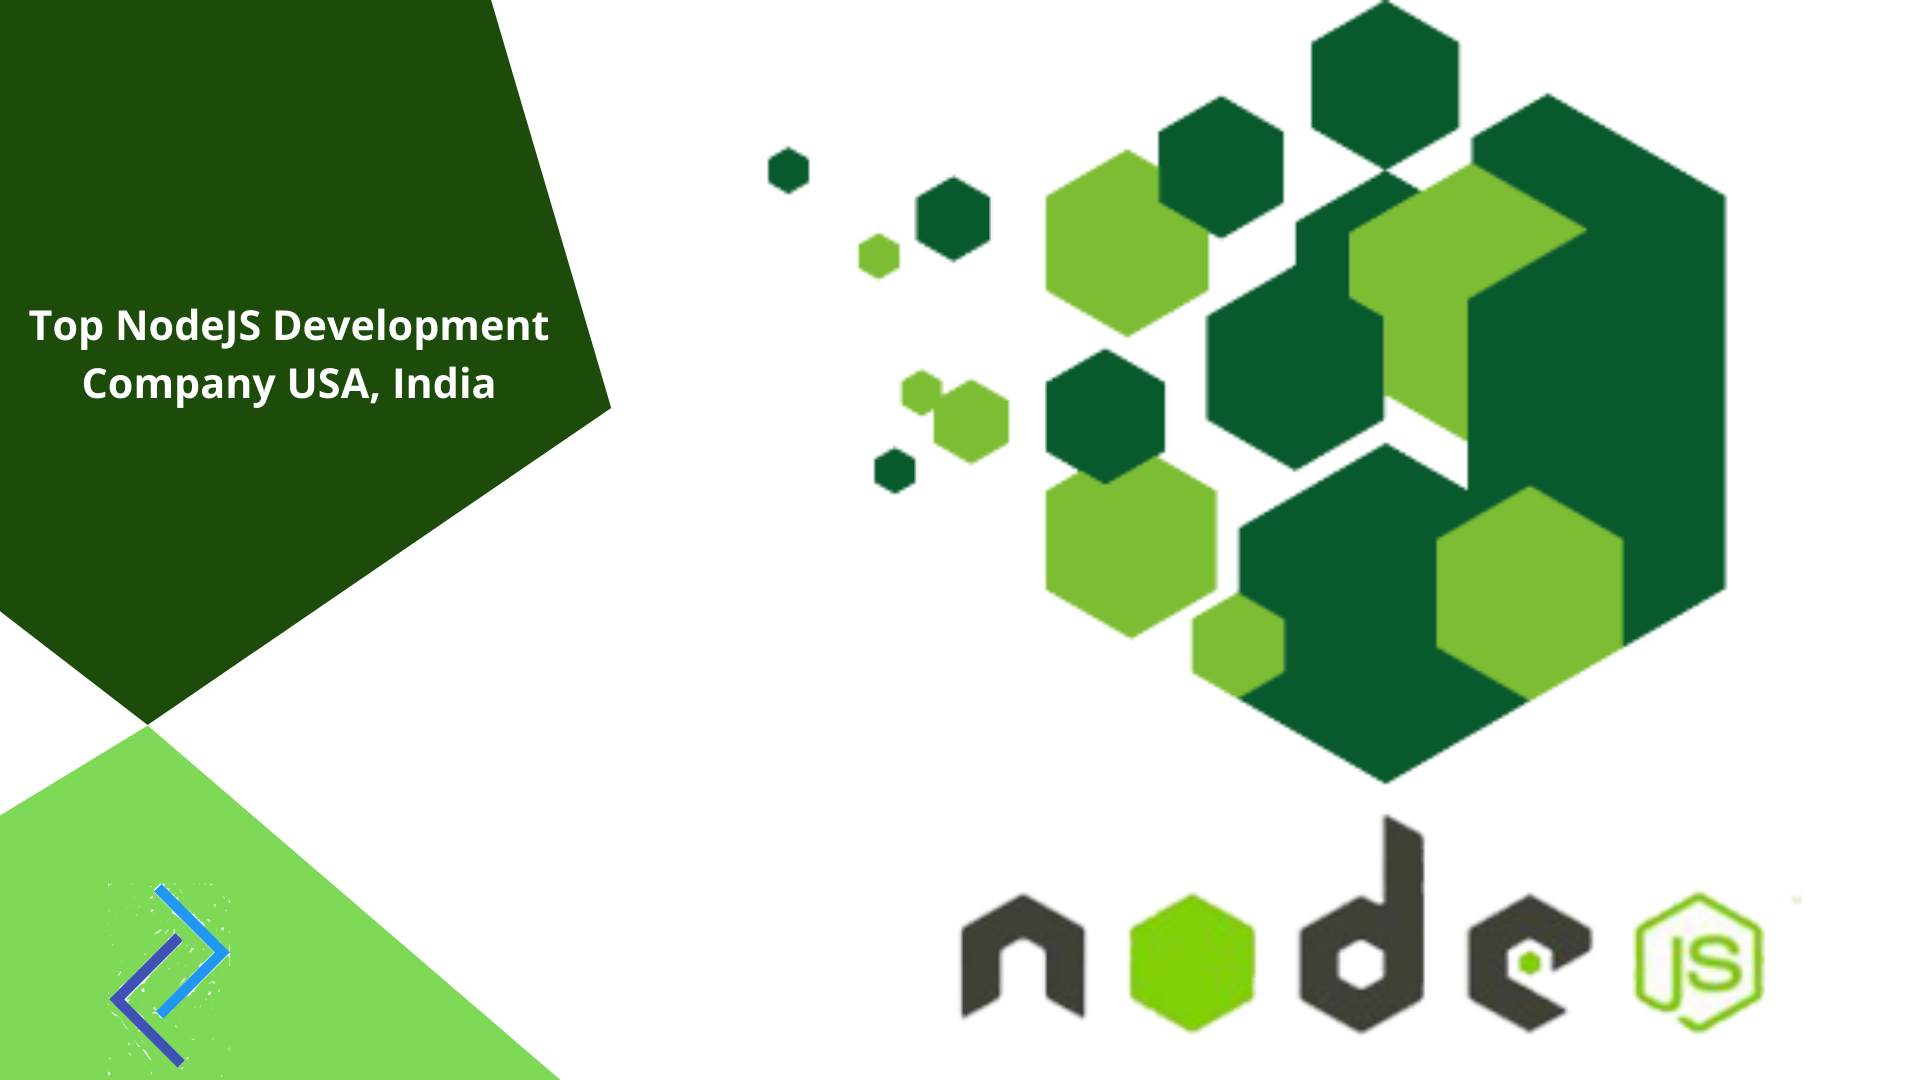 Top NodeJS Development Companies USA, India